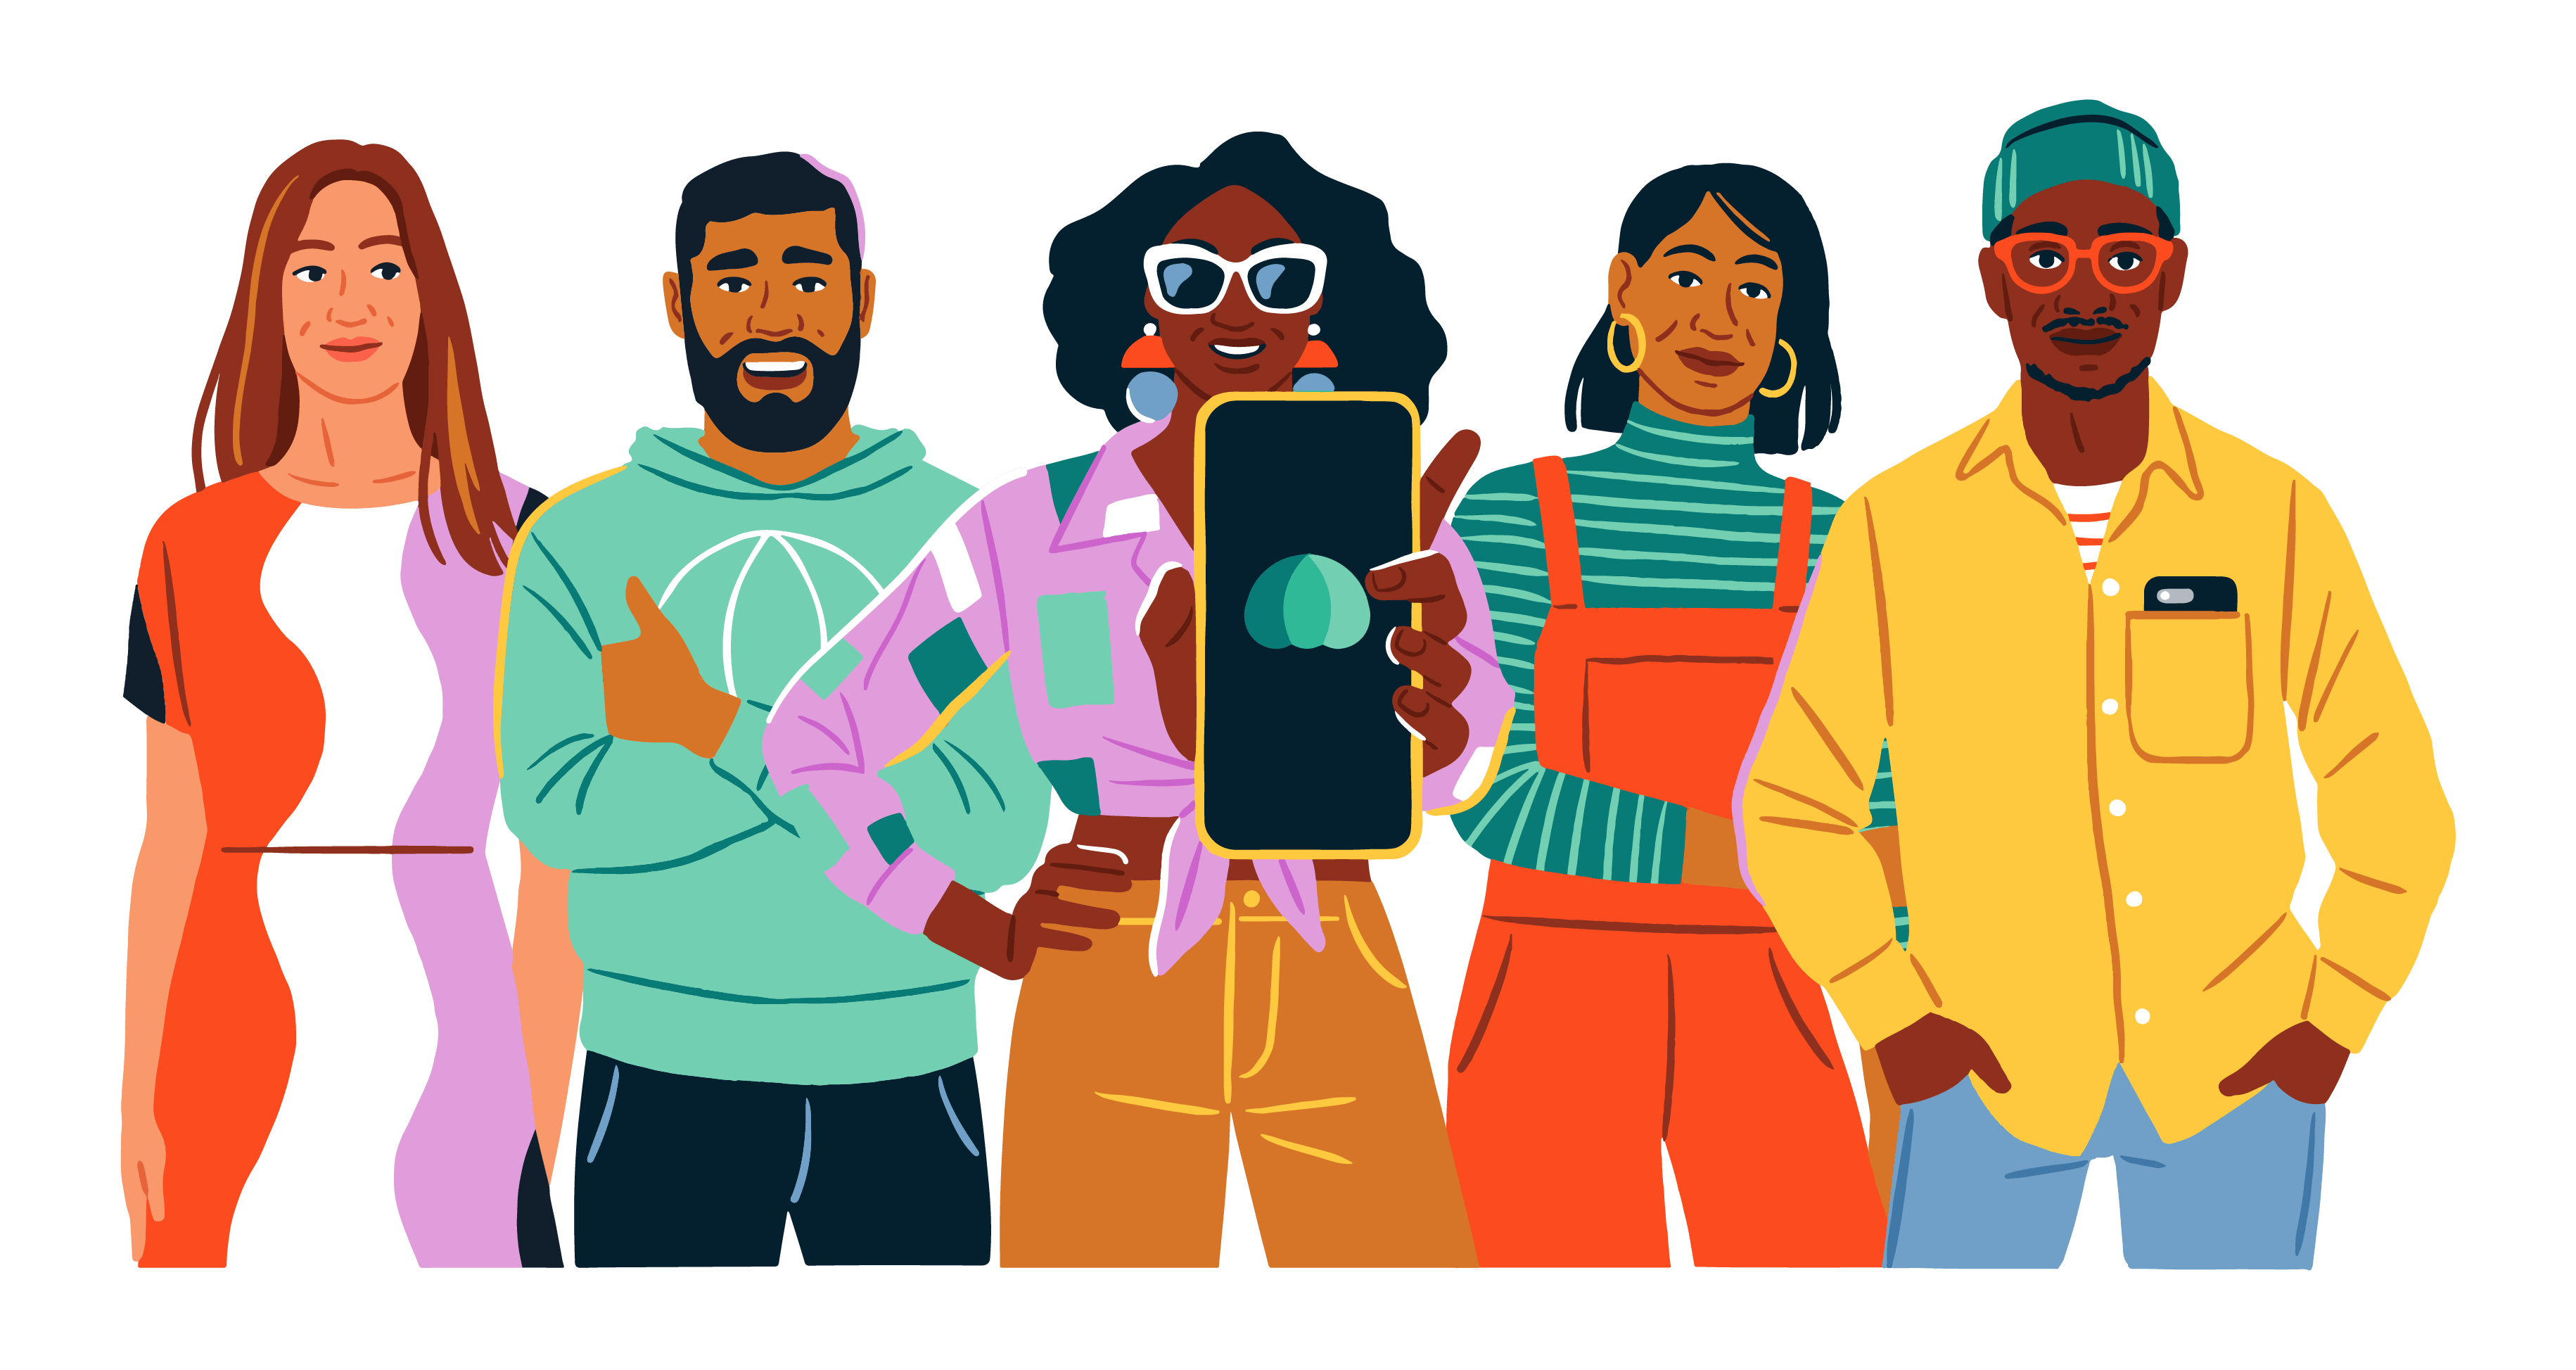 Illustration of a group of people, one holding a smartphone showing the Parachute logo